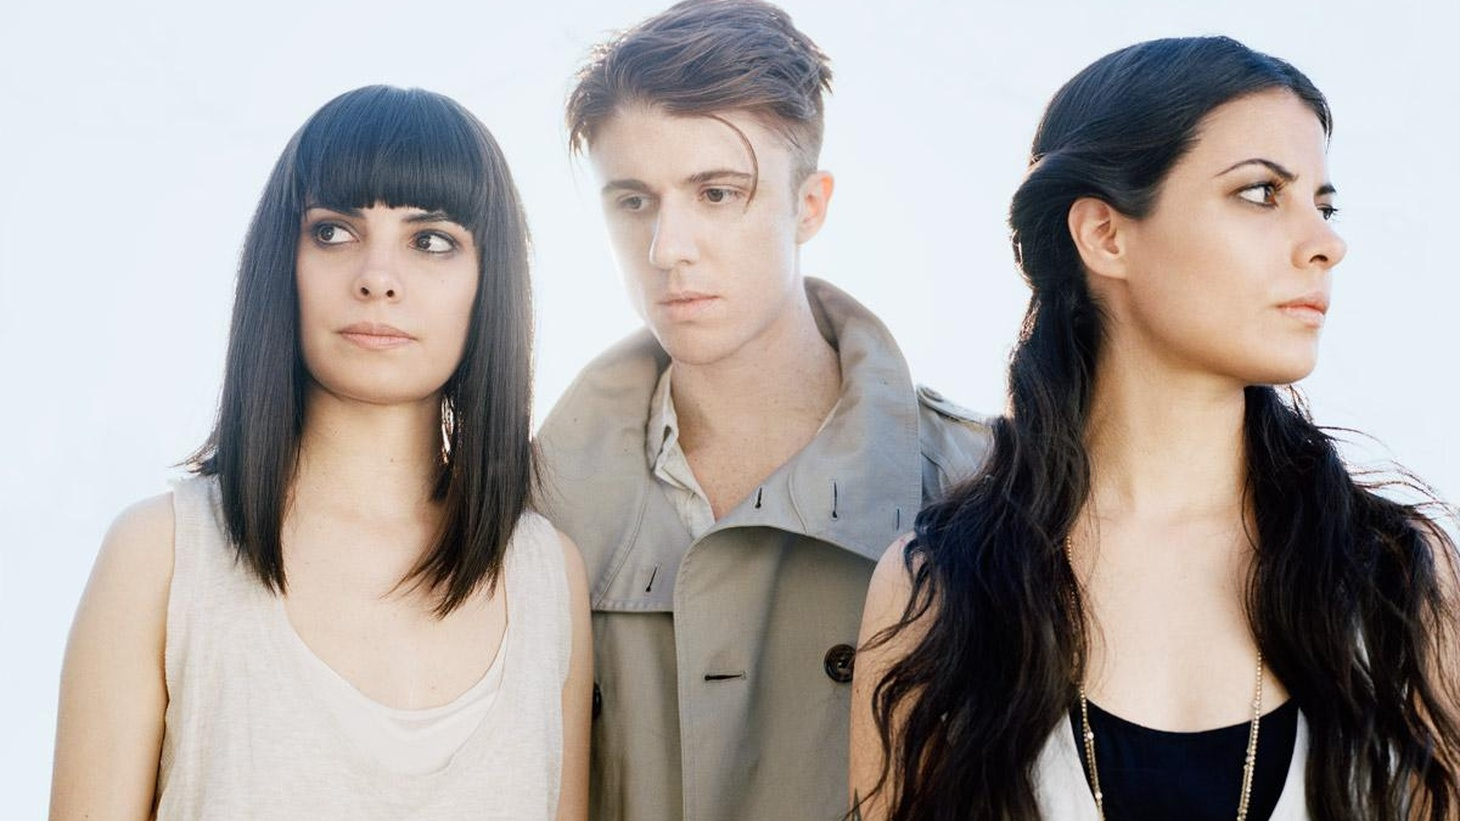 """School of Seven Bells' new album, Disconnect From Desire, is one of the most played on KCRW. The band features electronics-enhanced dream pop played by a former member of Secret Machines and a set of twin sisters. Today's Top Tune is an hypnotic mix called """"Dust Devil""""."""